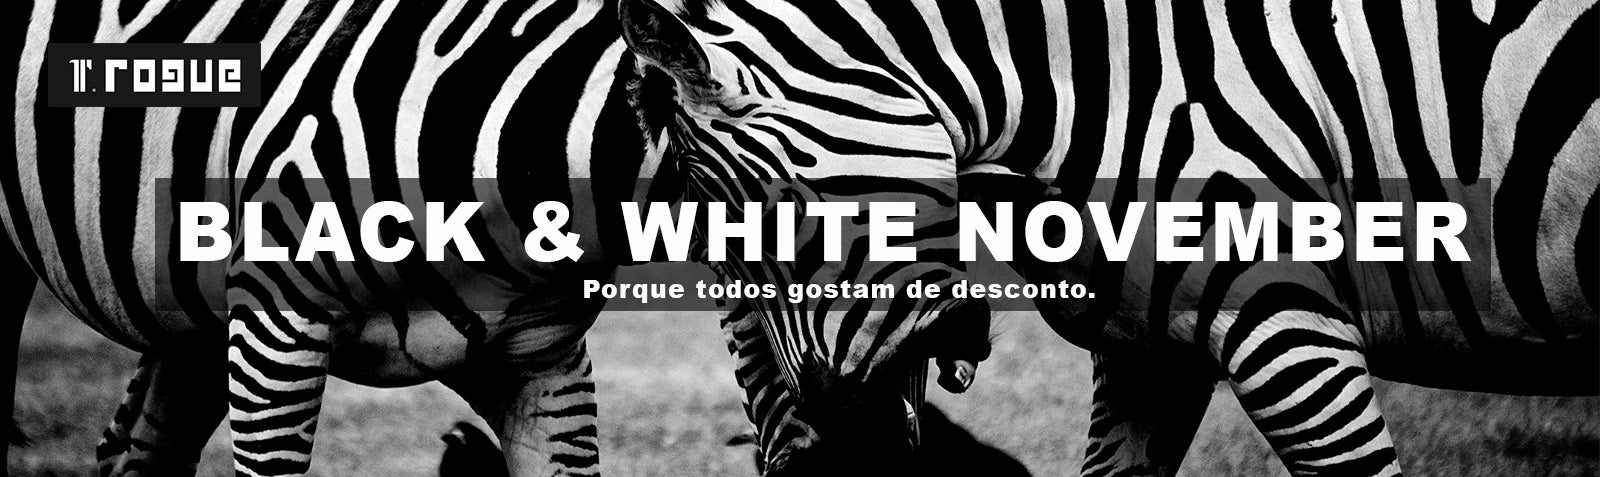 Rogue Black and White Friday